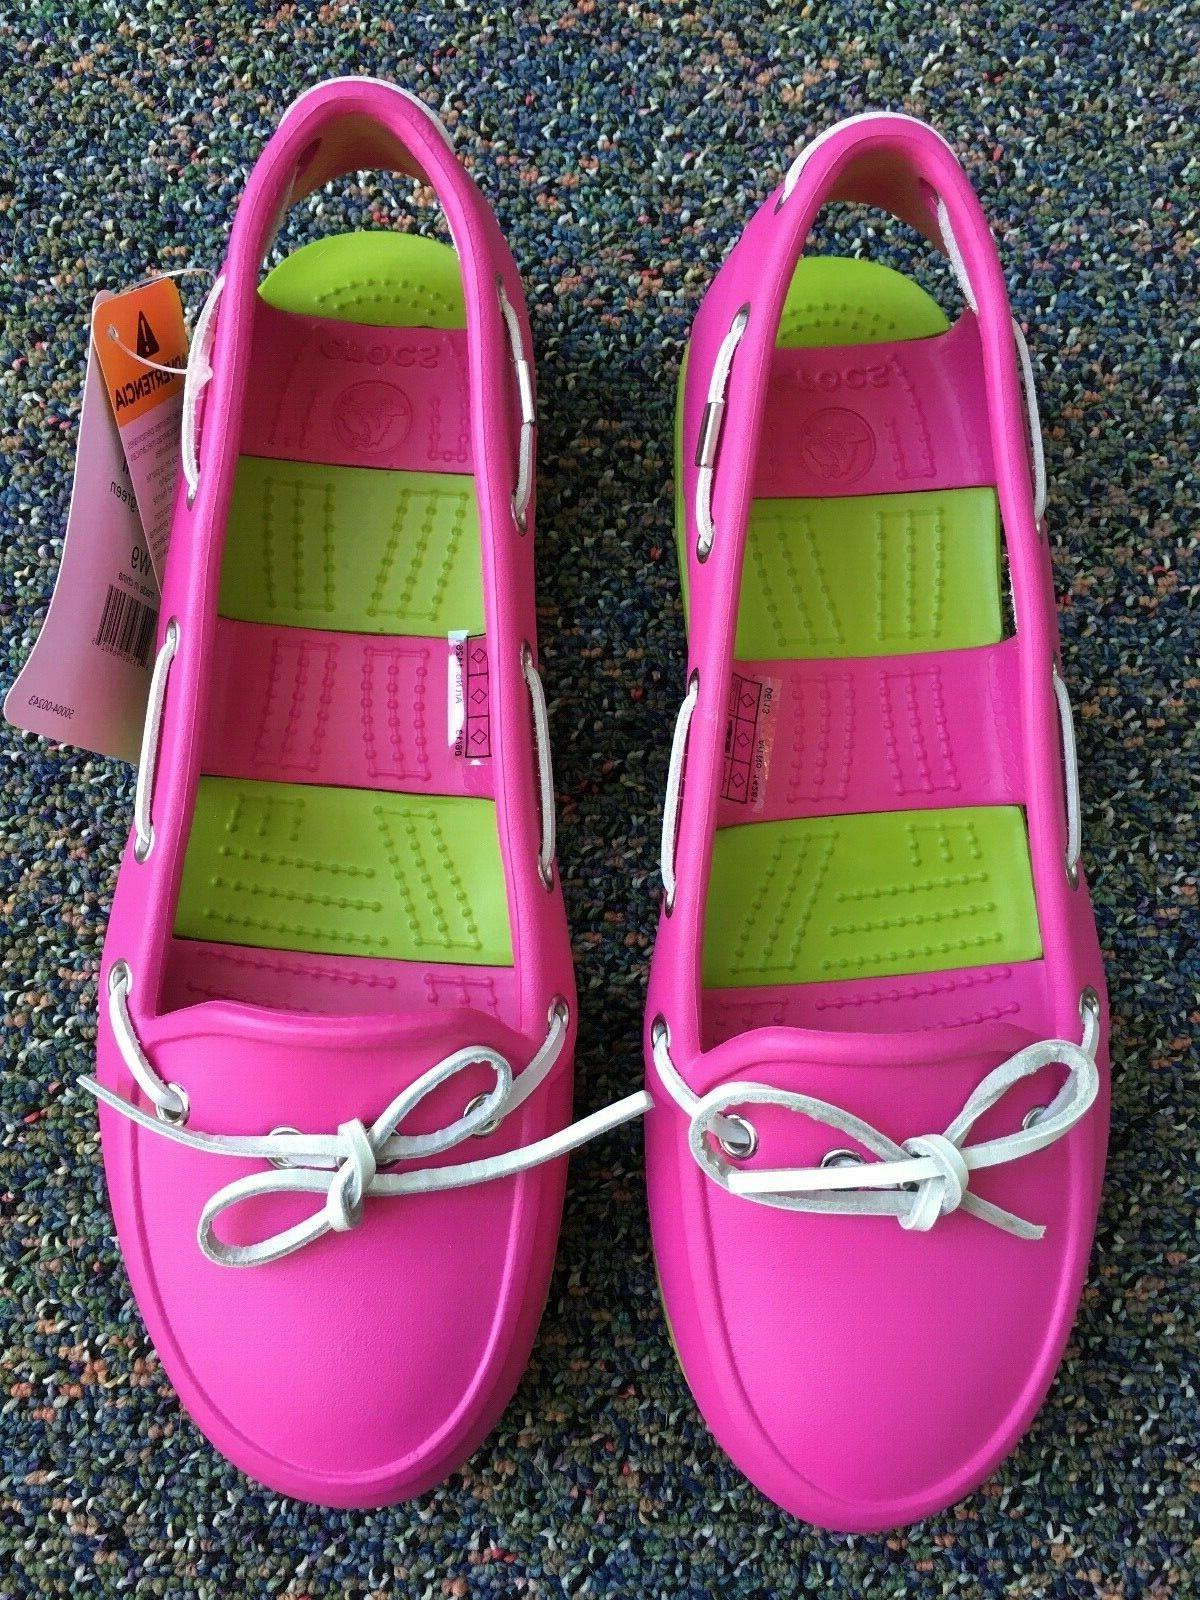 NWT Crocs Beach Line Cut Out Nautical Loafers & Green